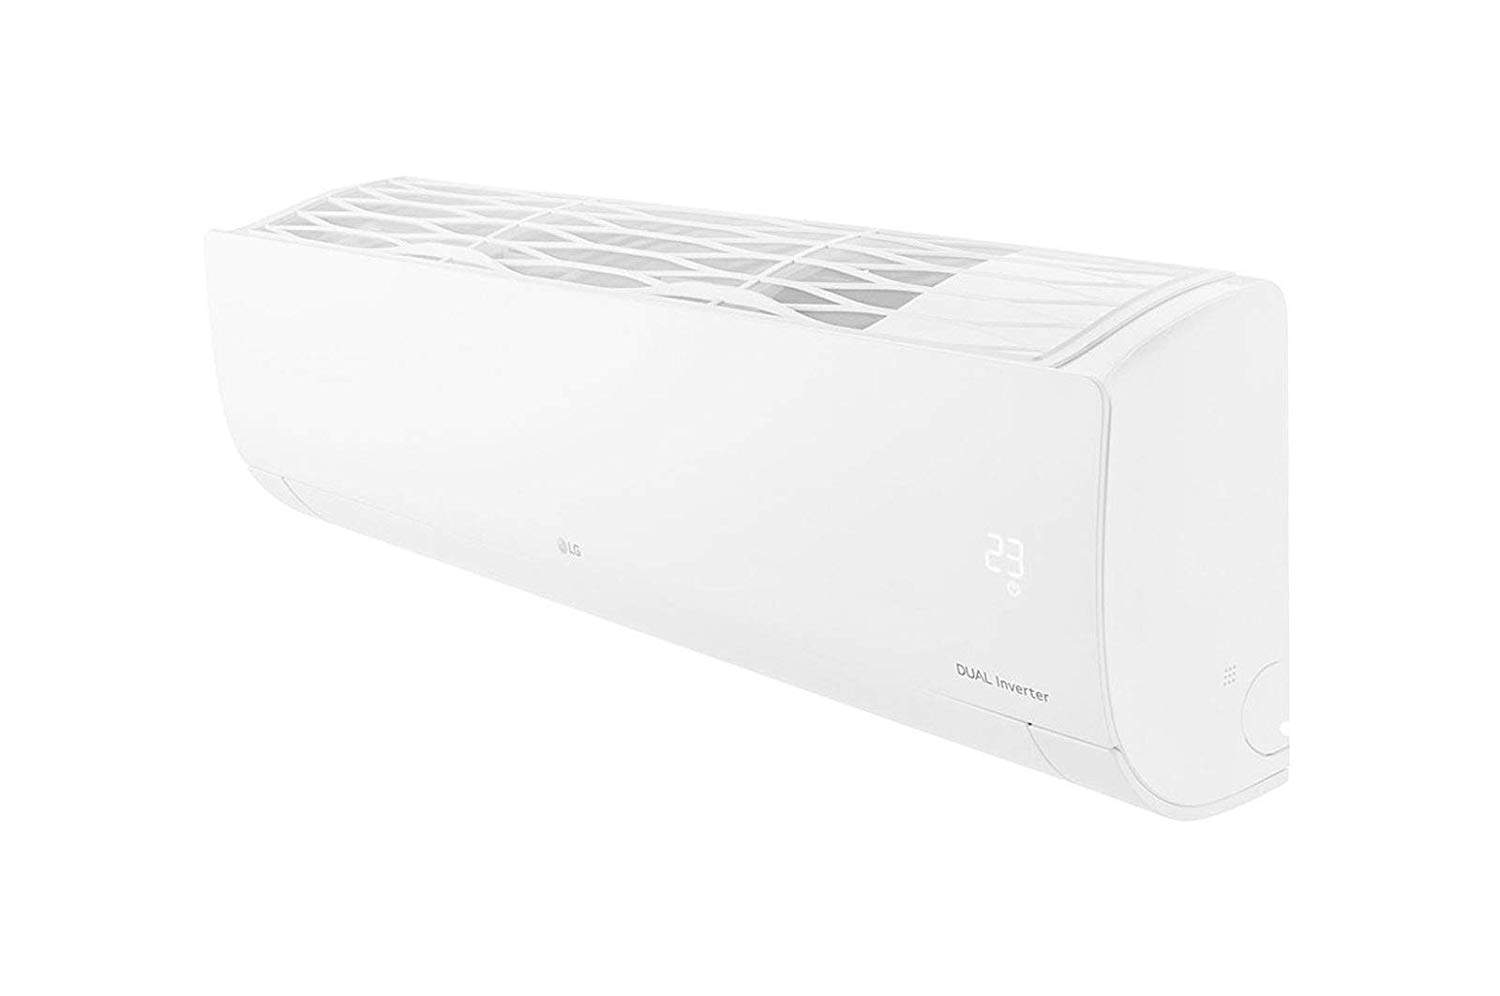 LG 1.5 Ton 5 Star Inverter Split AC (Copper, KS-Q18HNZD, White)